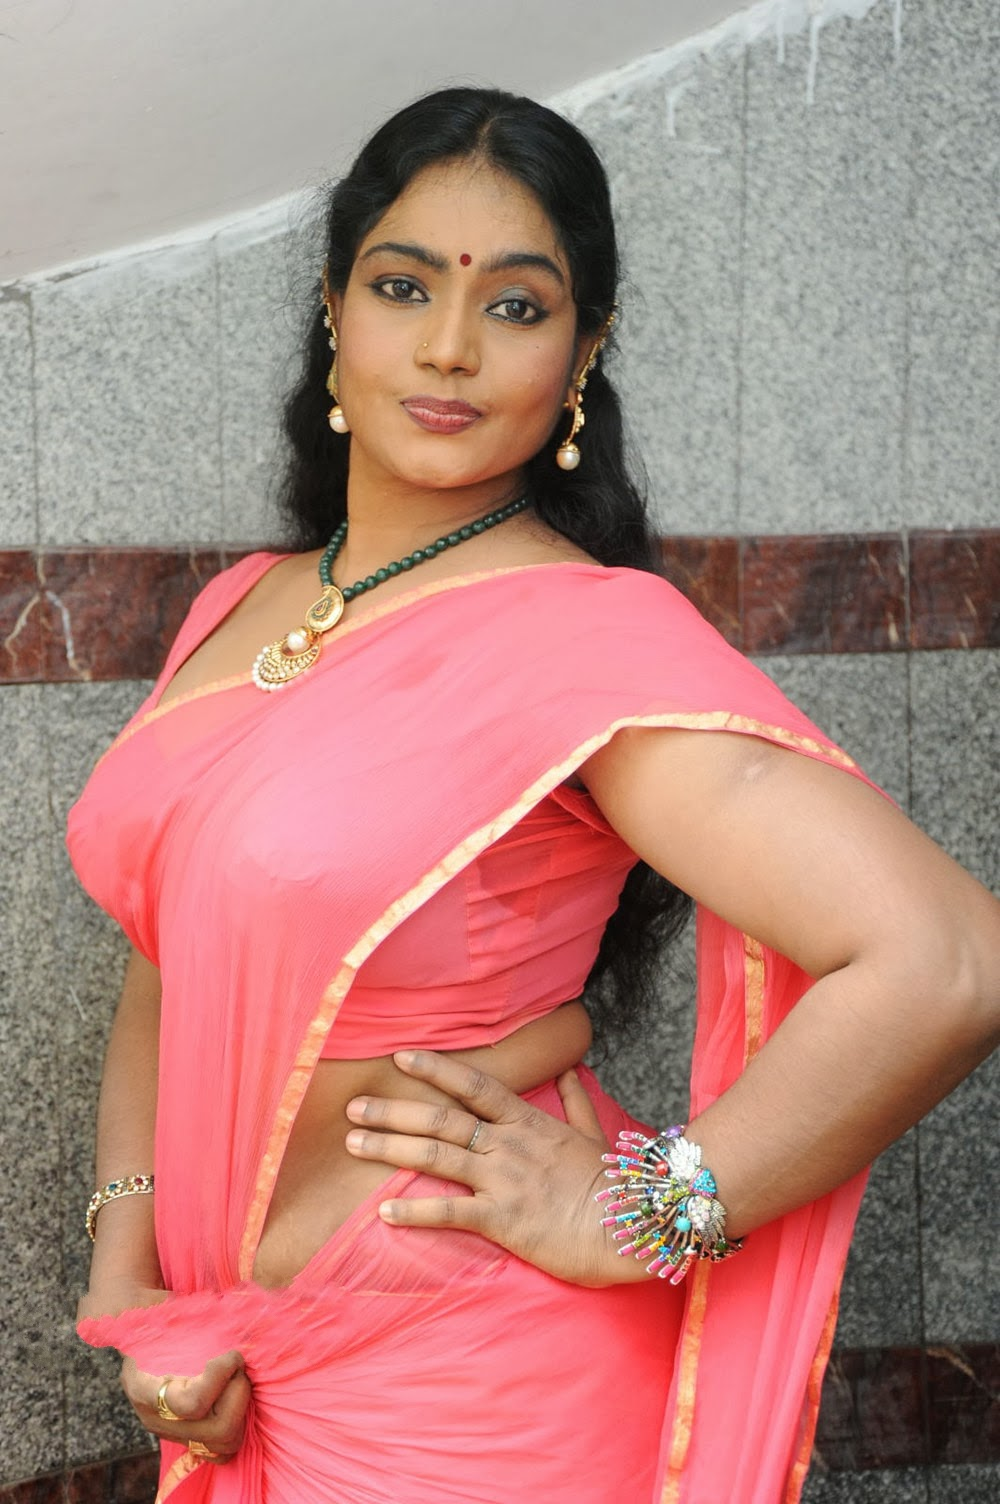 jayavani saree latest telugu actress spicy stills rajmahal movie shoot tollywood entertainment